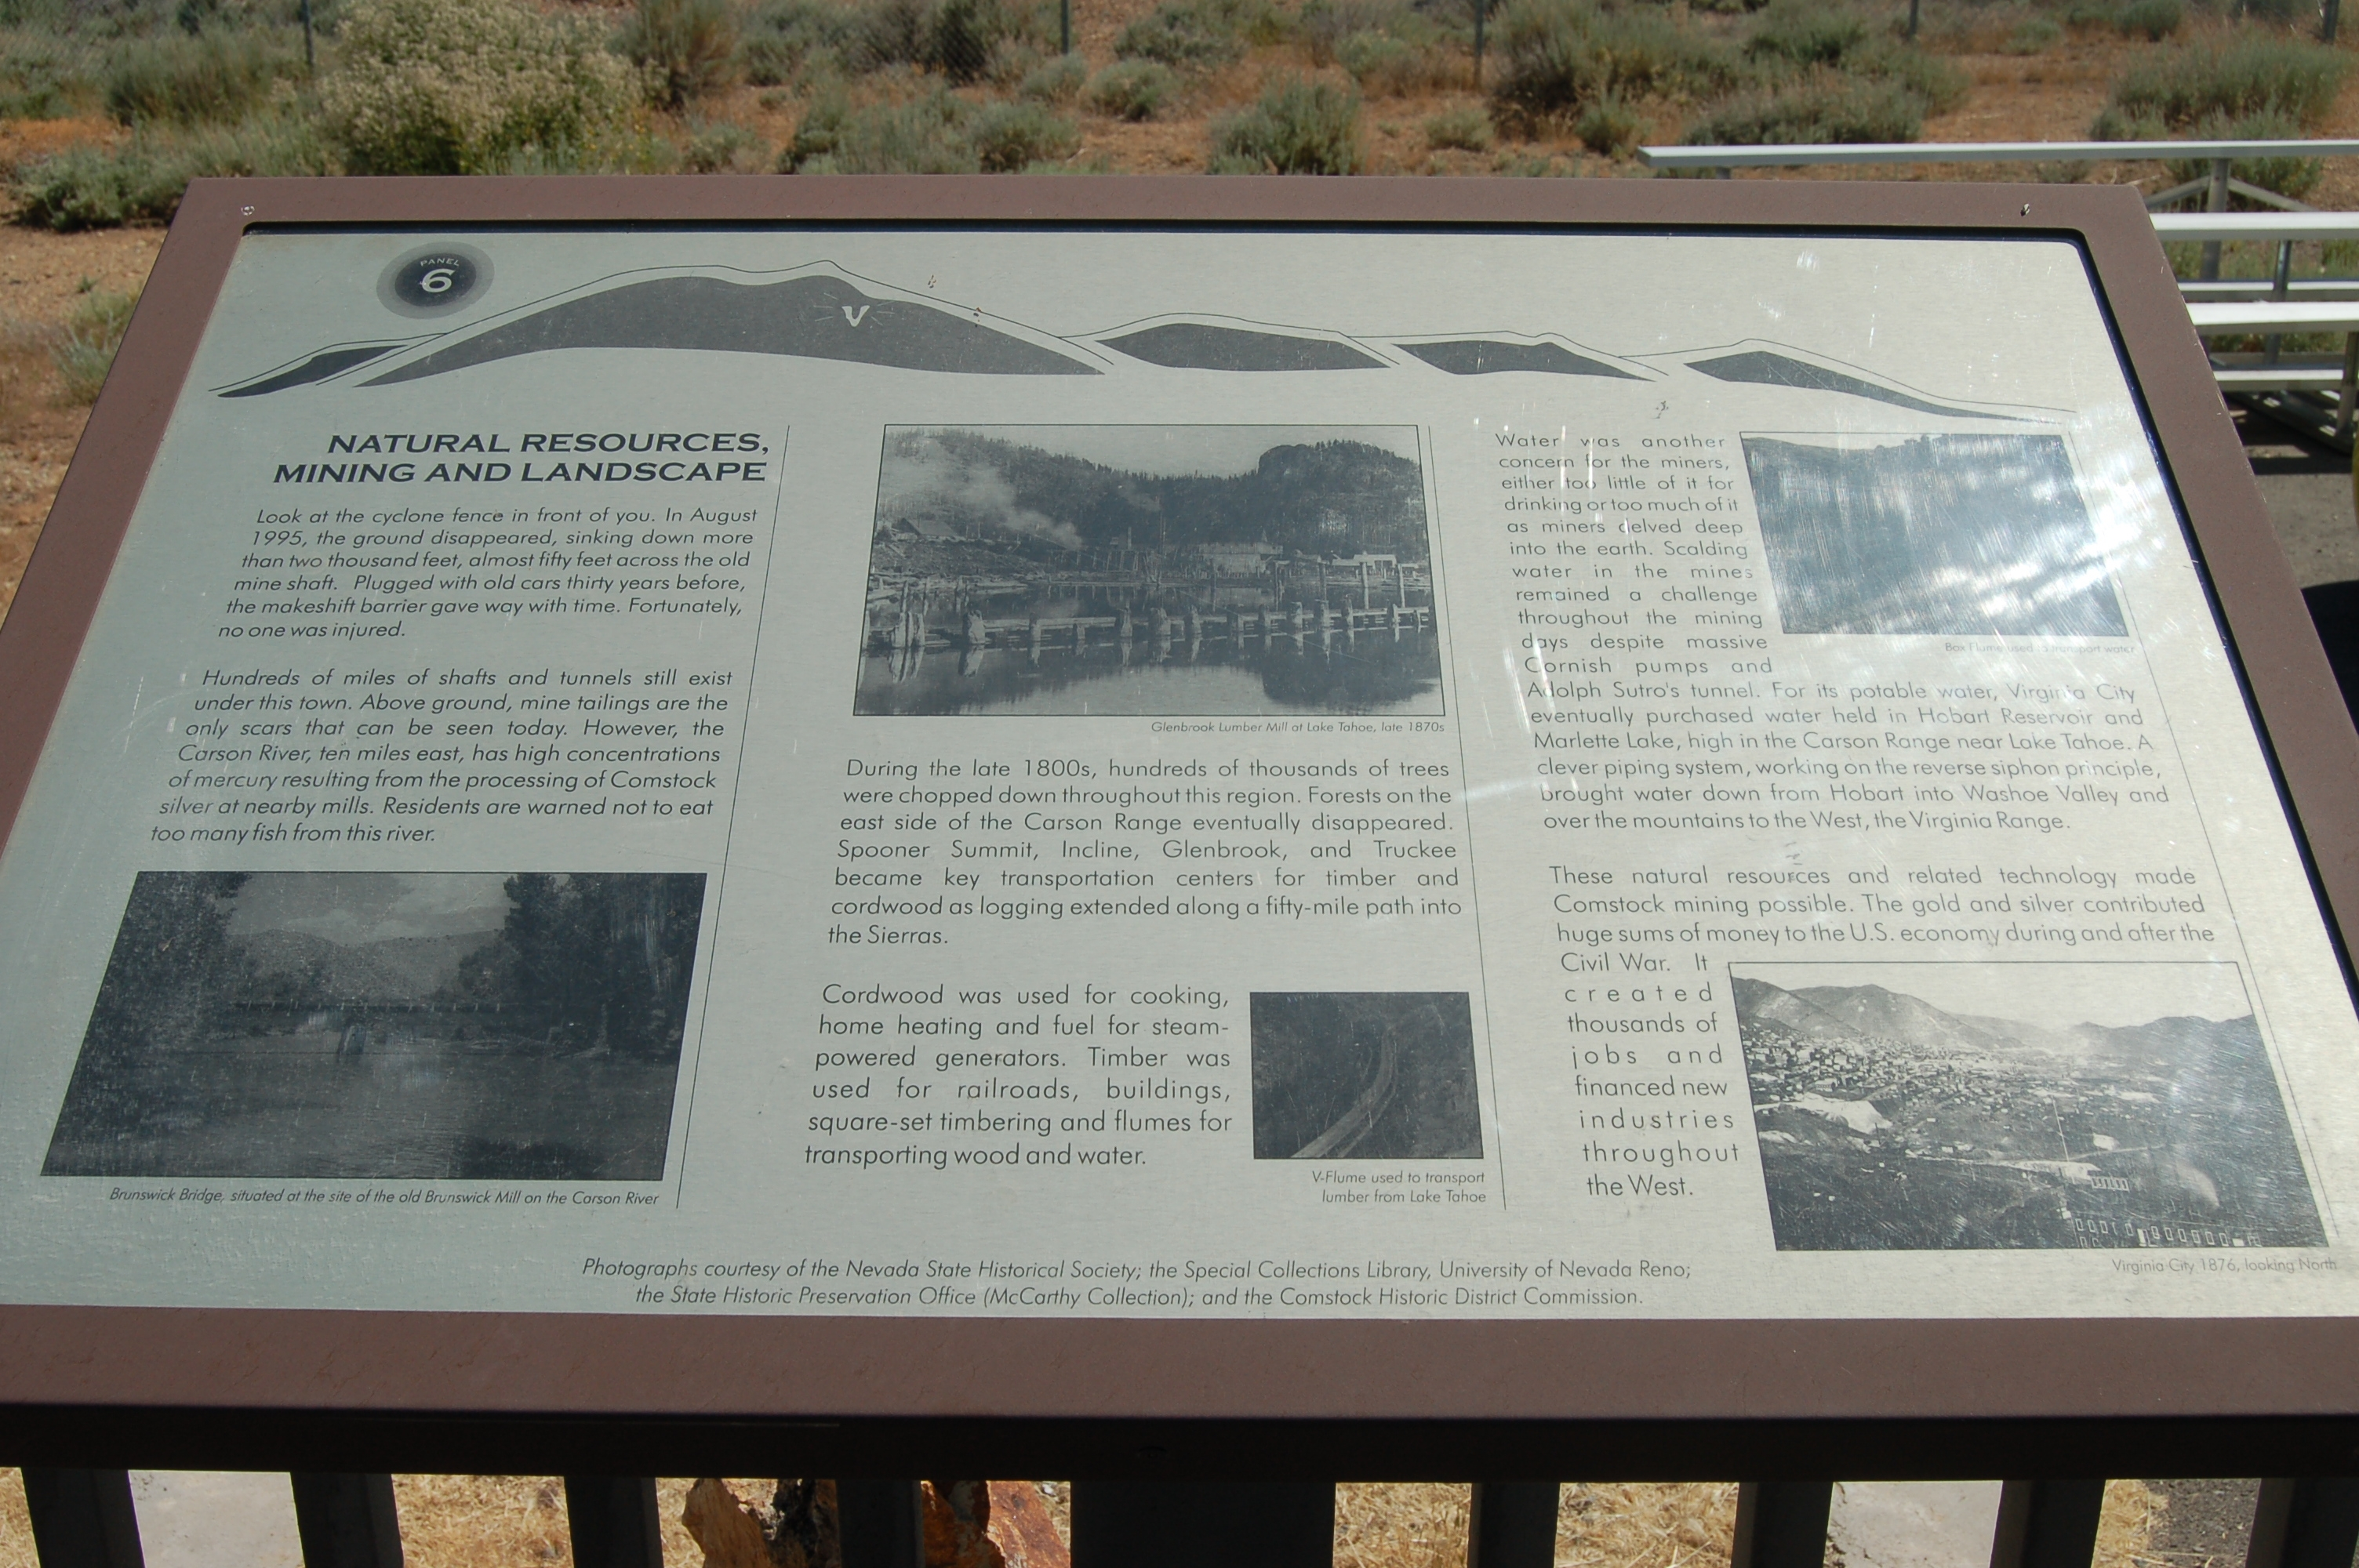 The Comstock Trail and History Kiosk Marker, Panel 6